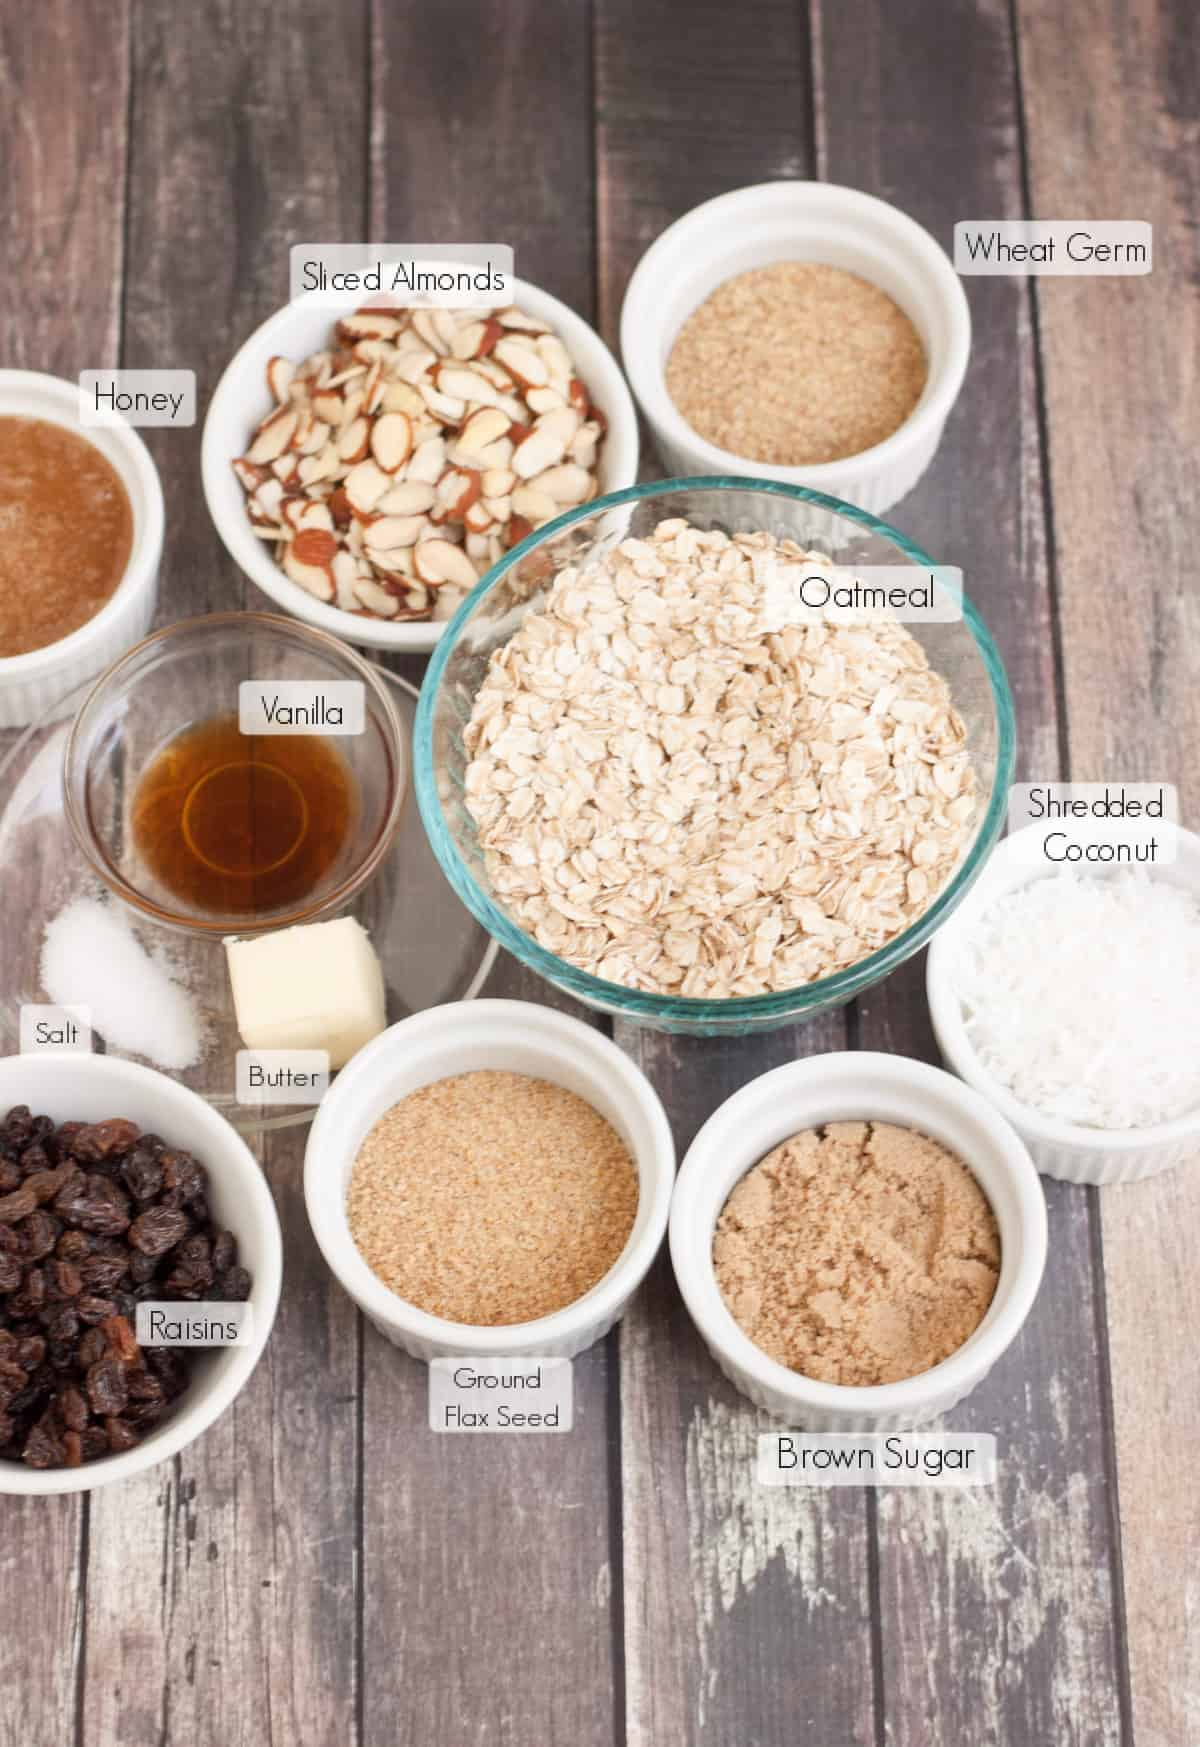 Labeled ingredients in bowls to make homemade granola bars.